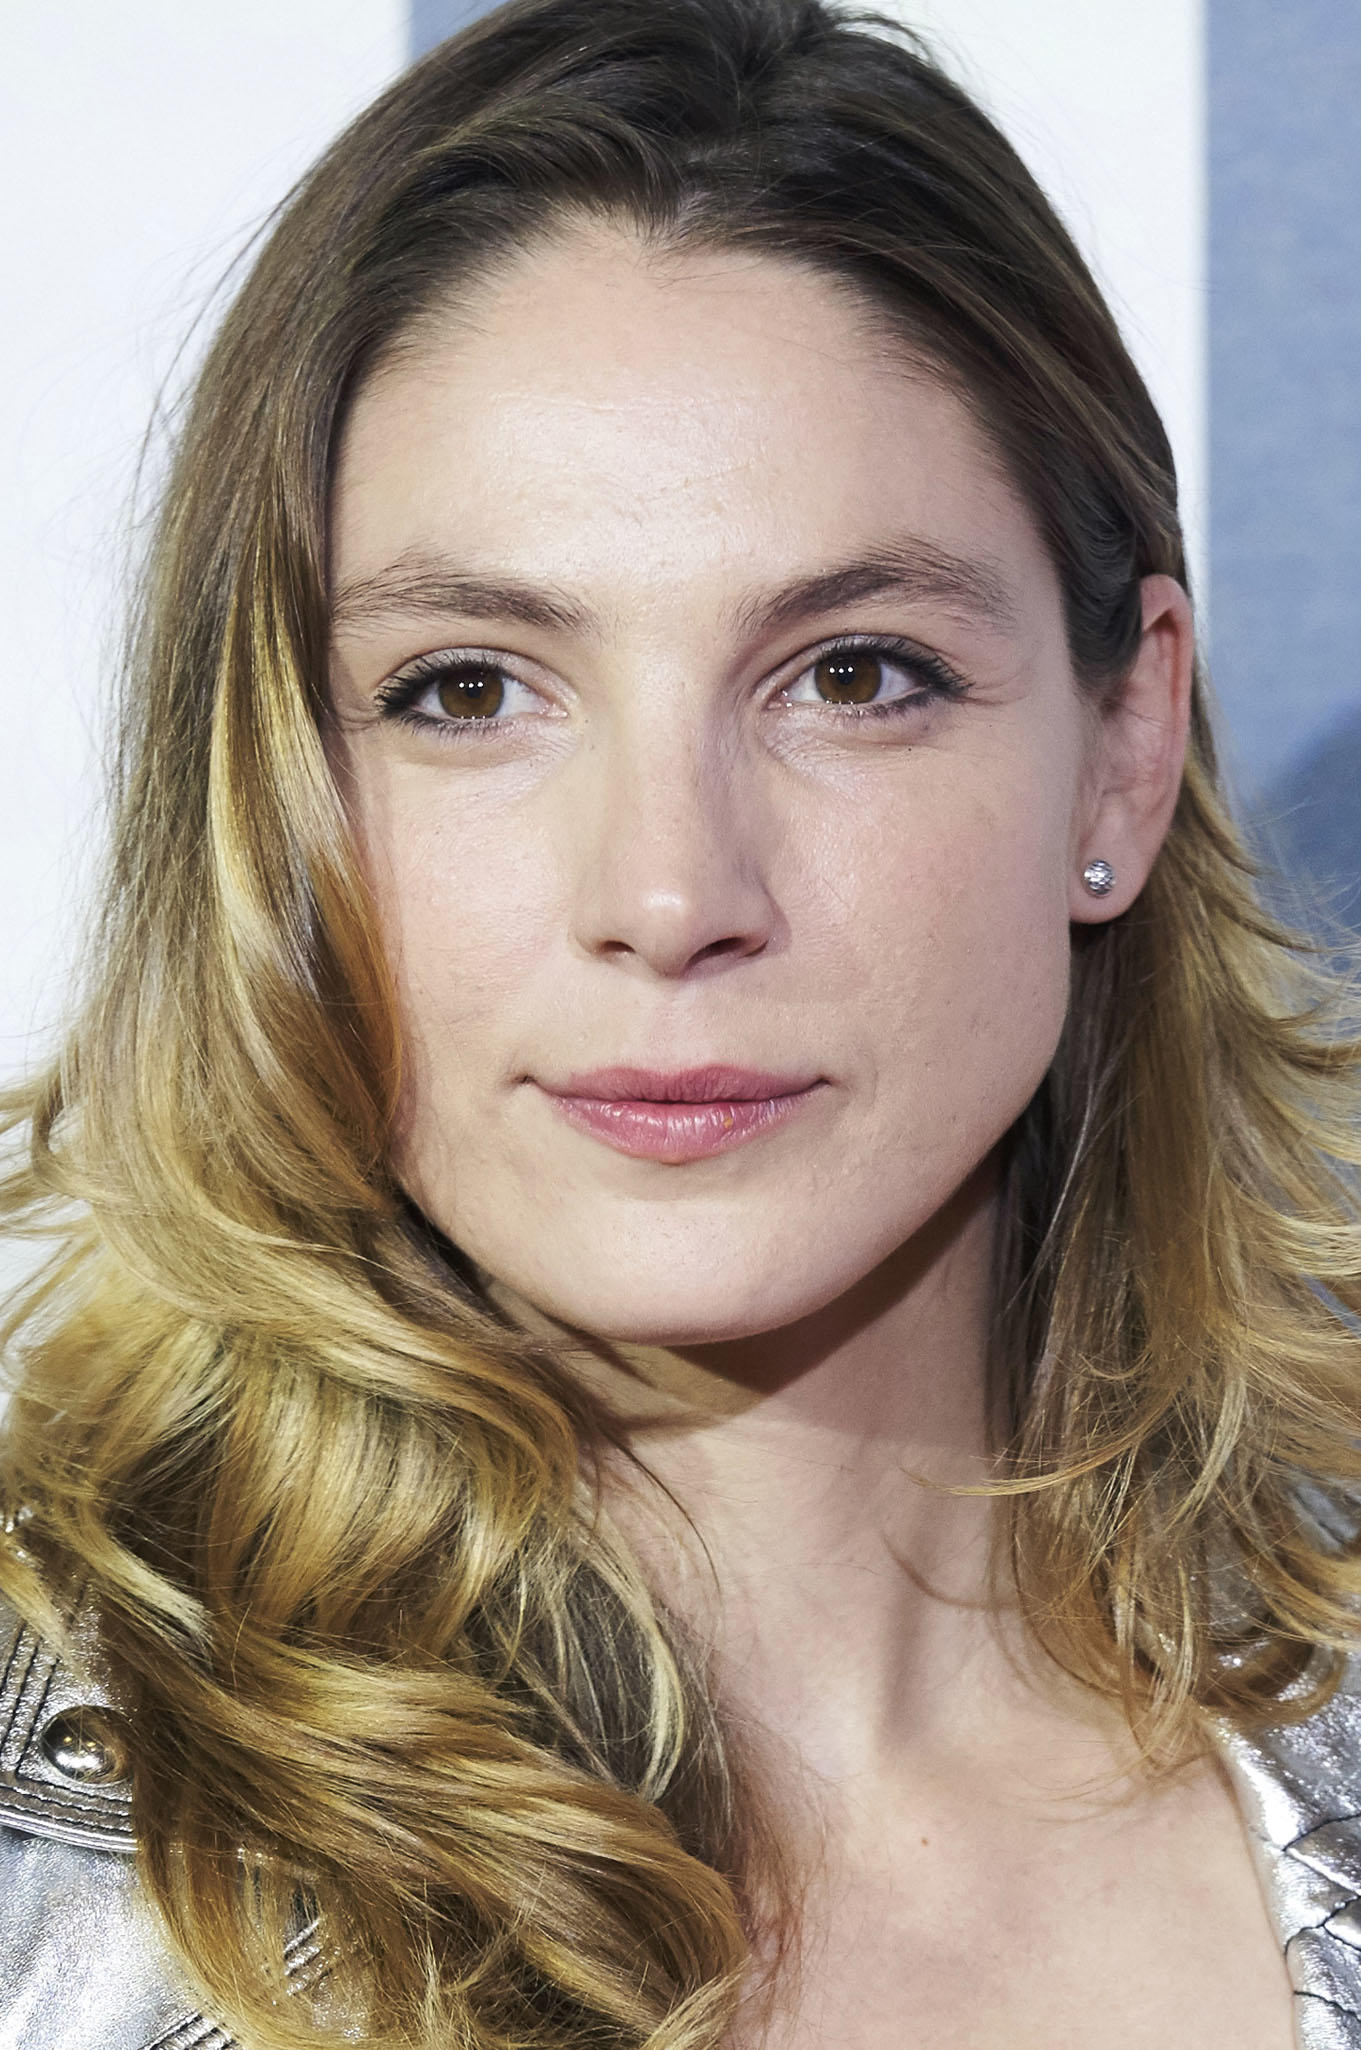 Paloma Bloyd Pictures and Photos | Fandango